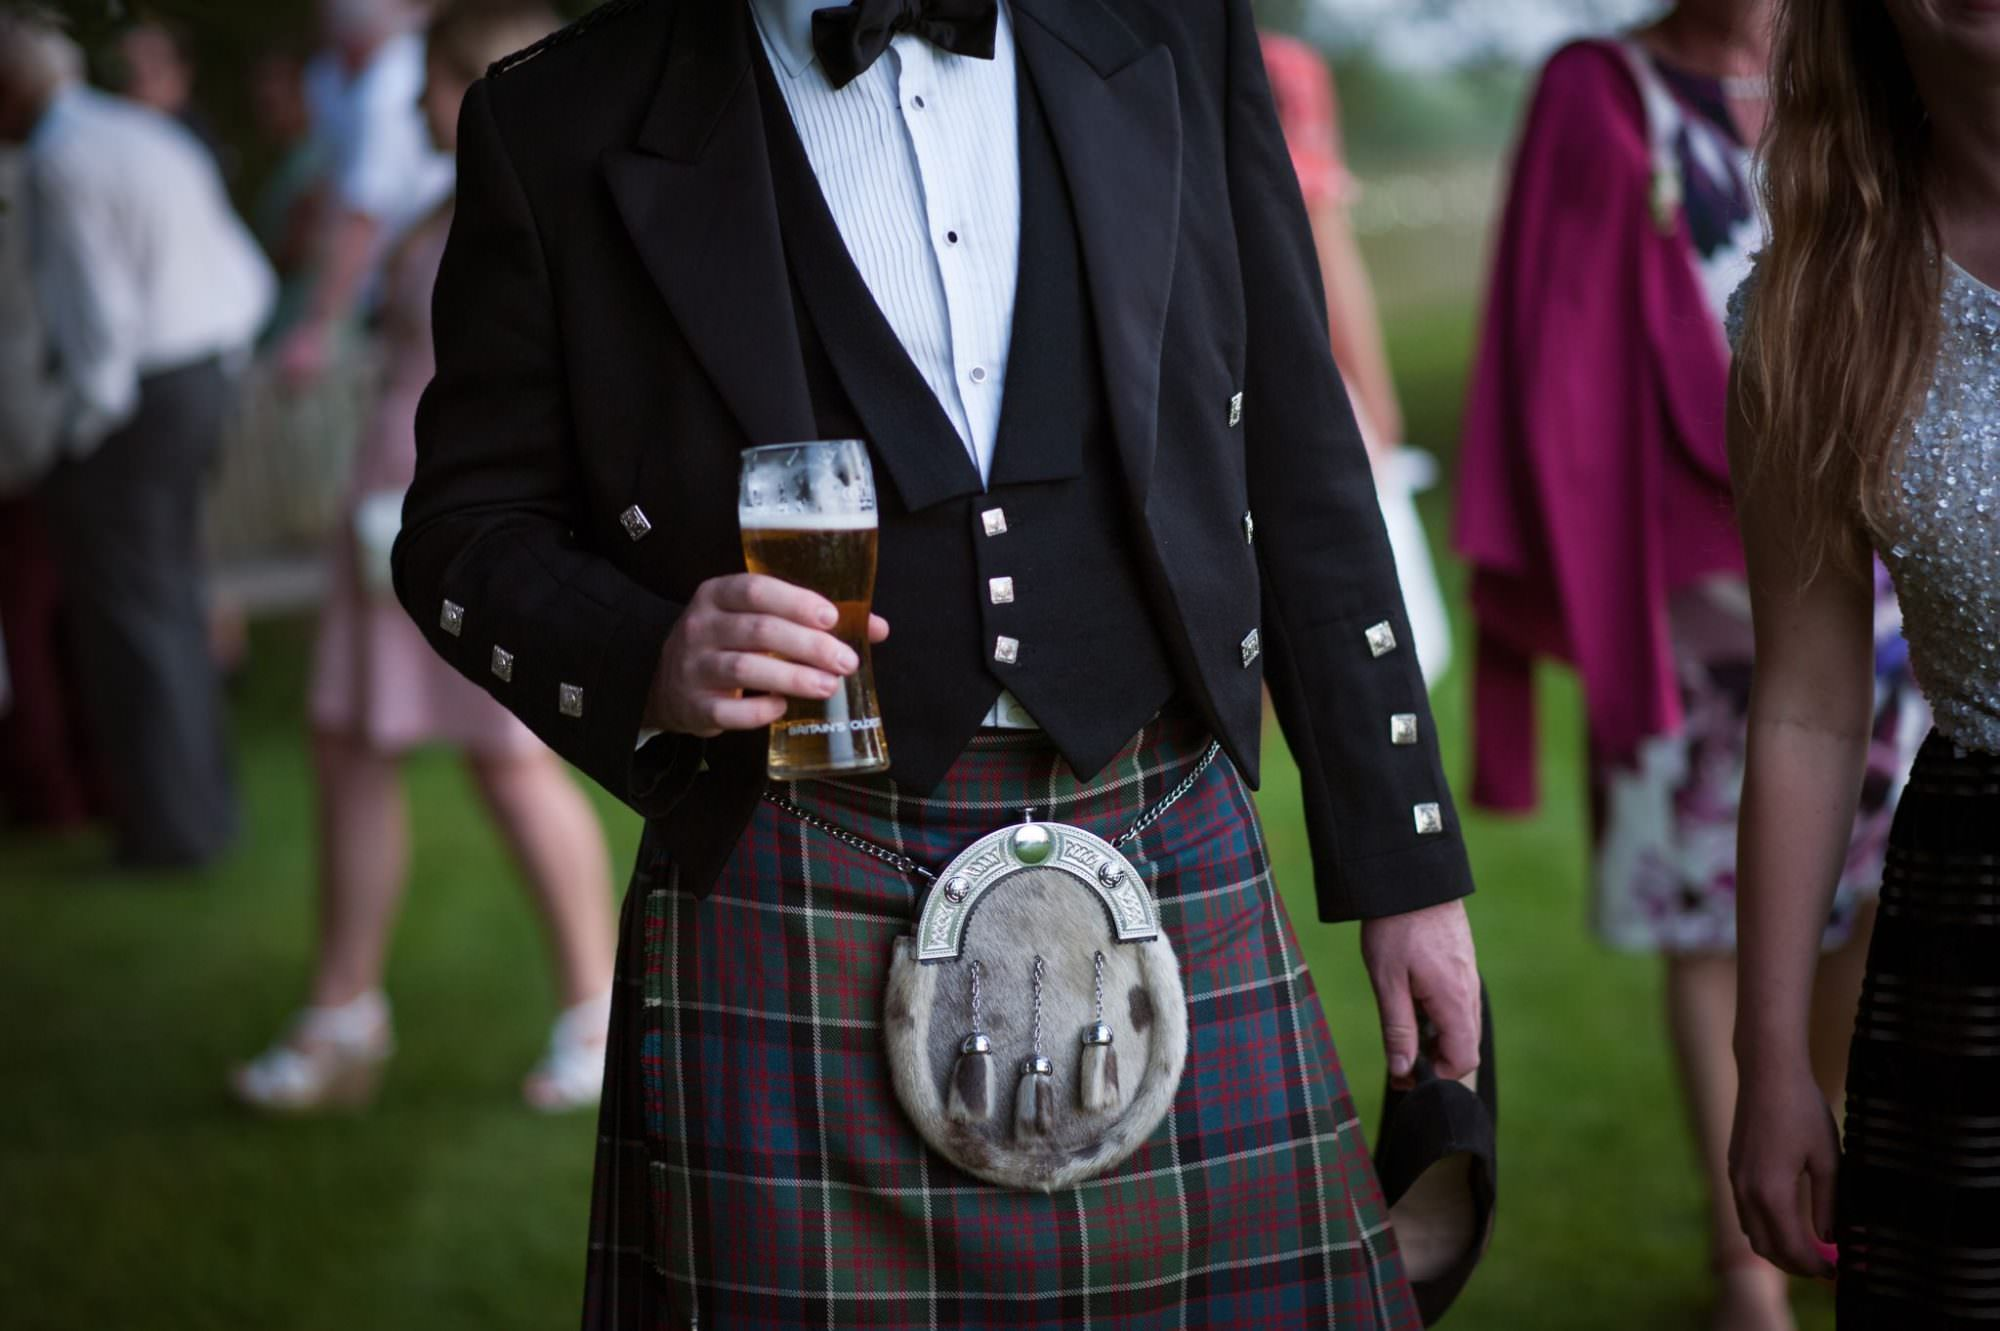 Guest wearing kilt at Dorset wedding